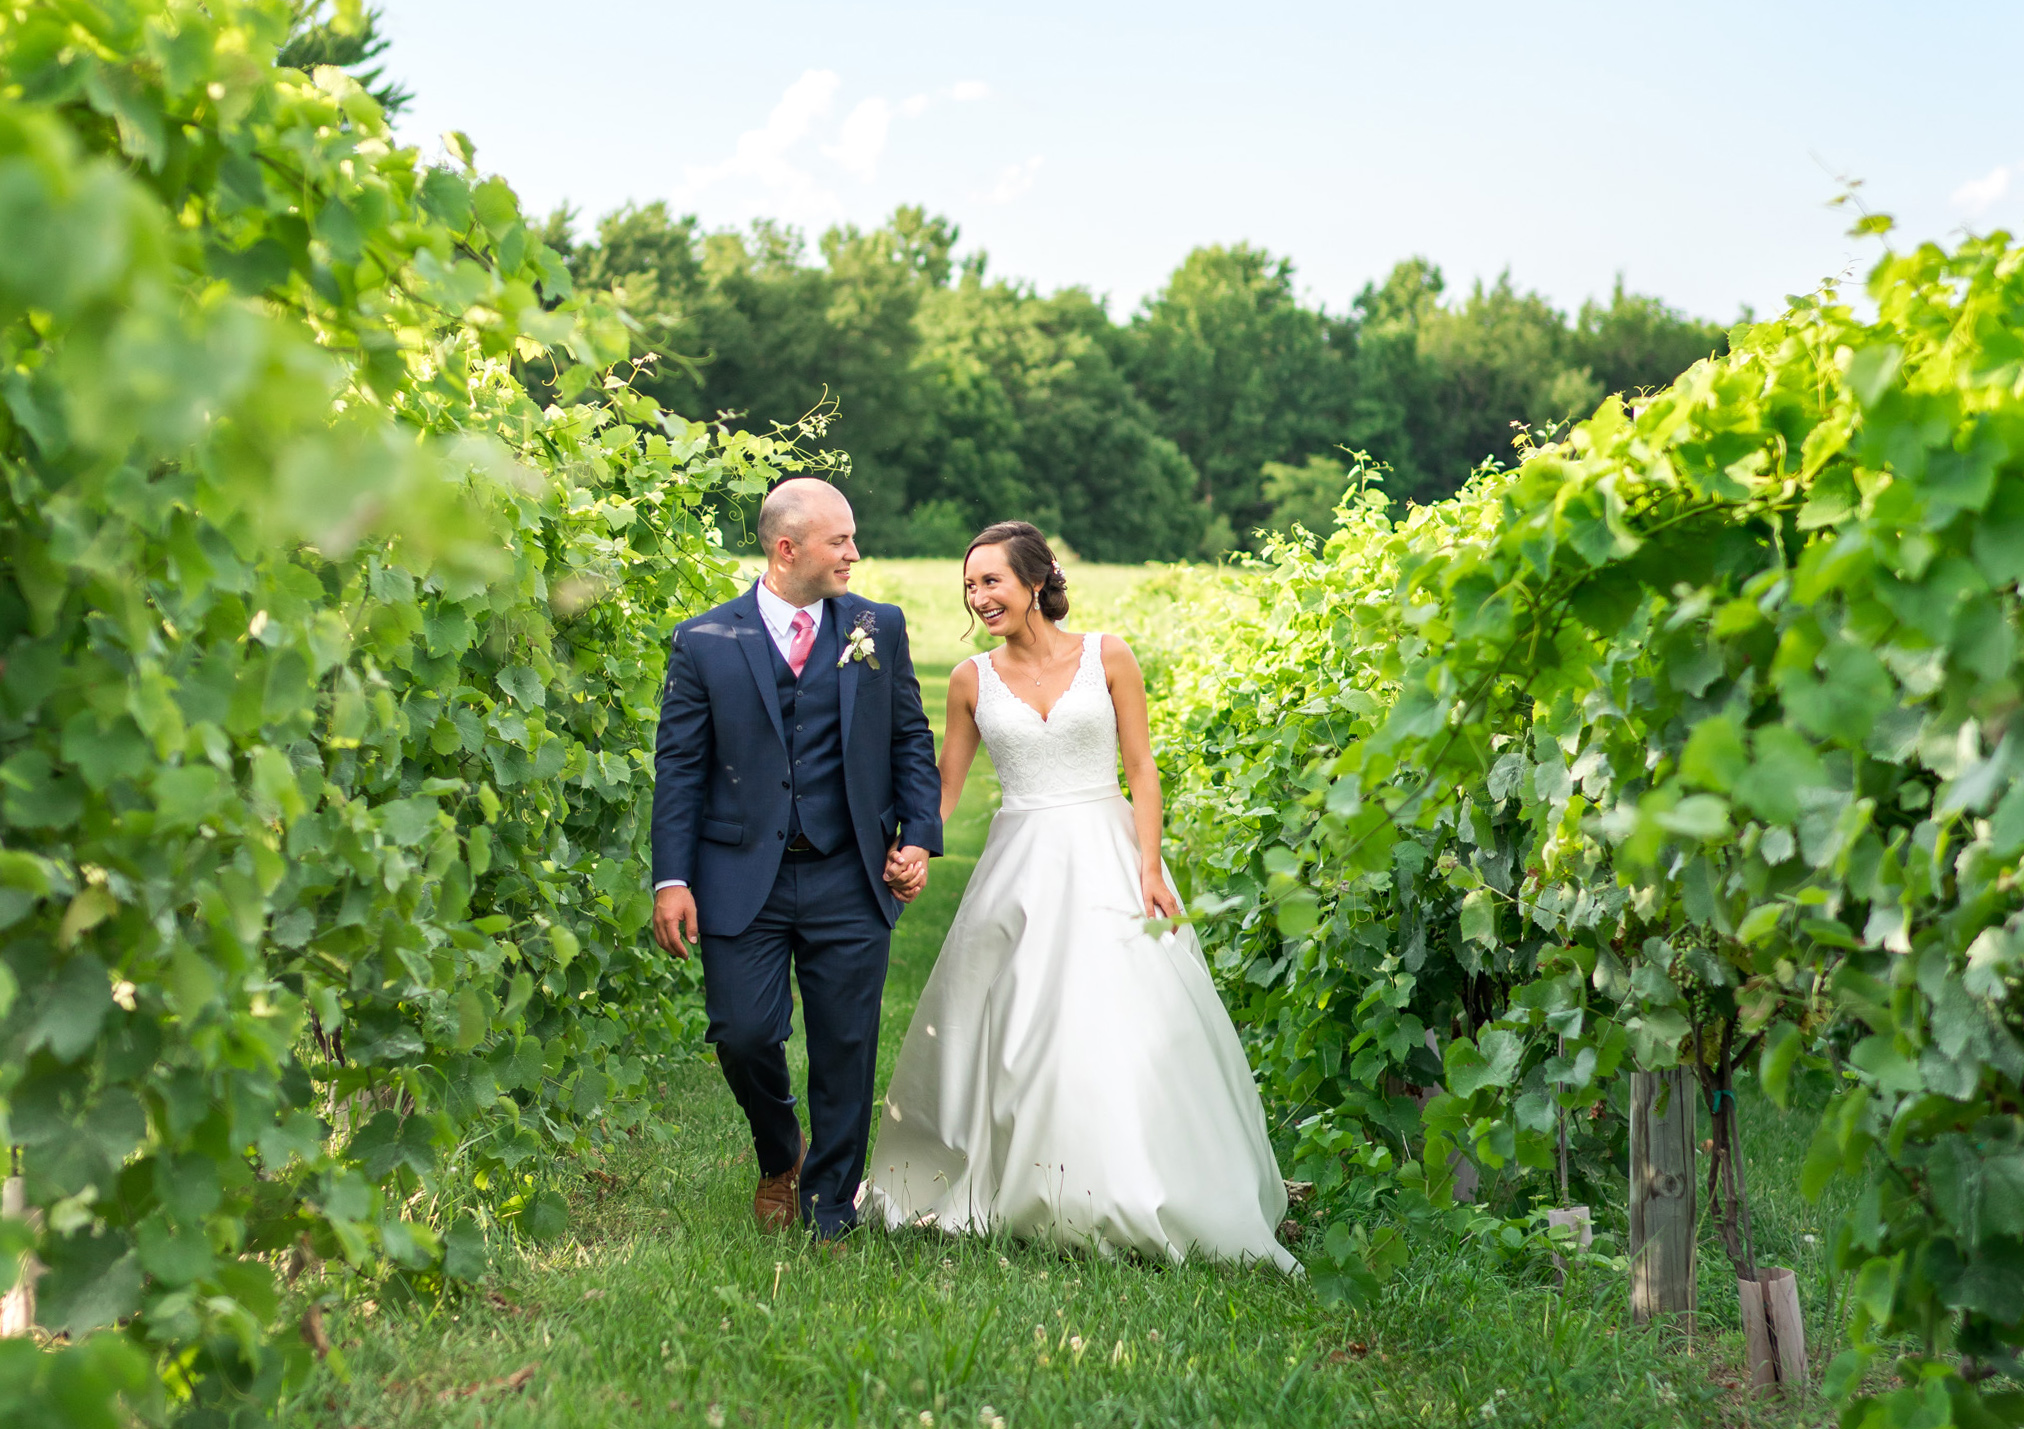 Winery and lavender field wedding in Virginia and Maryland